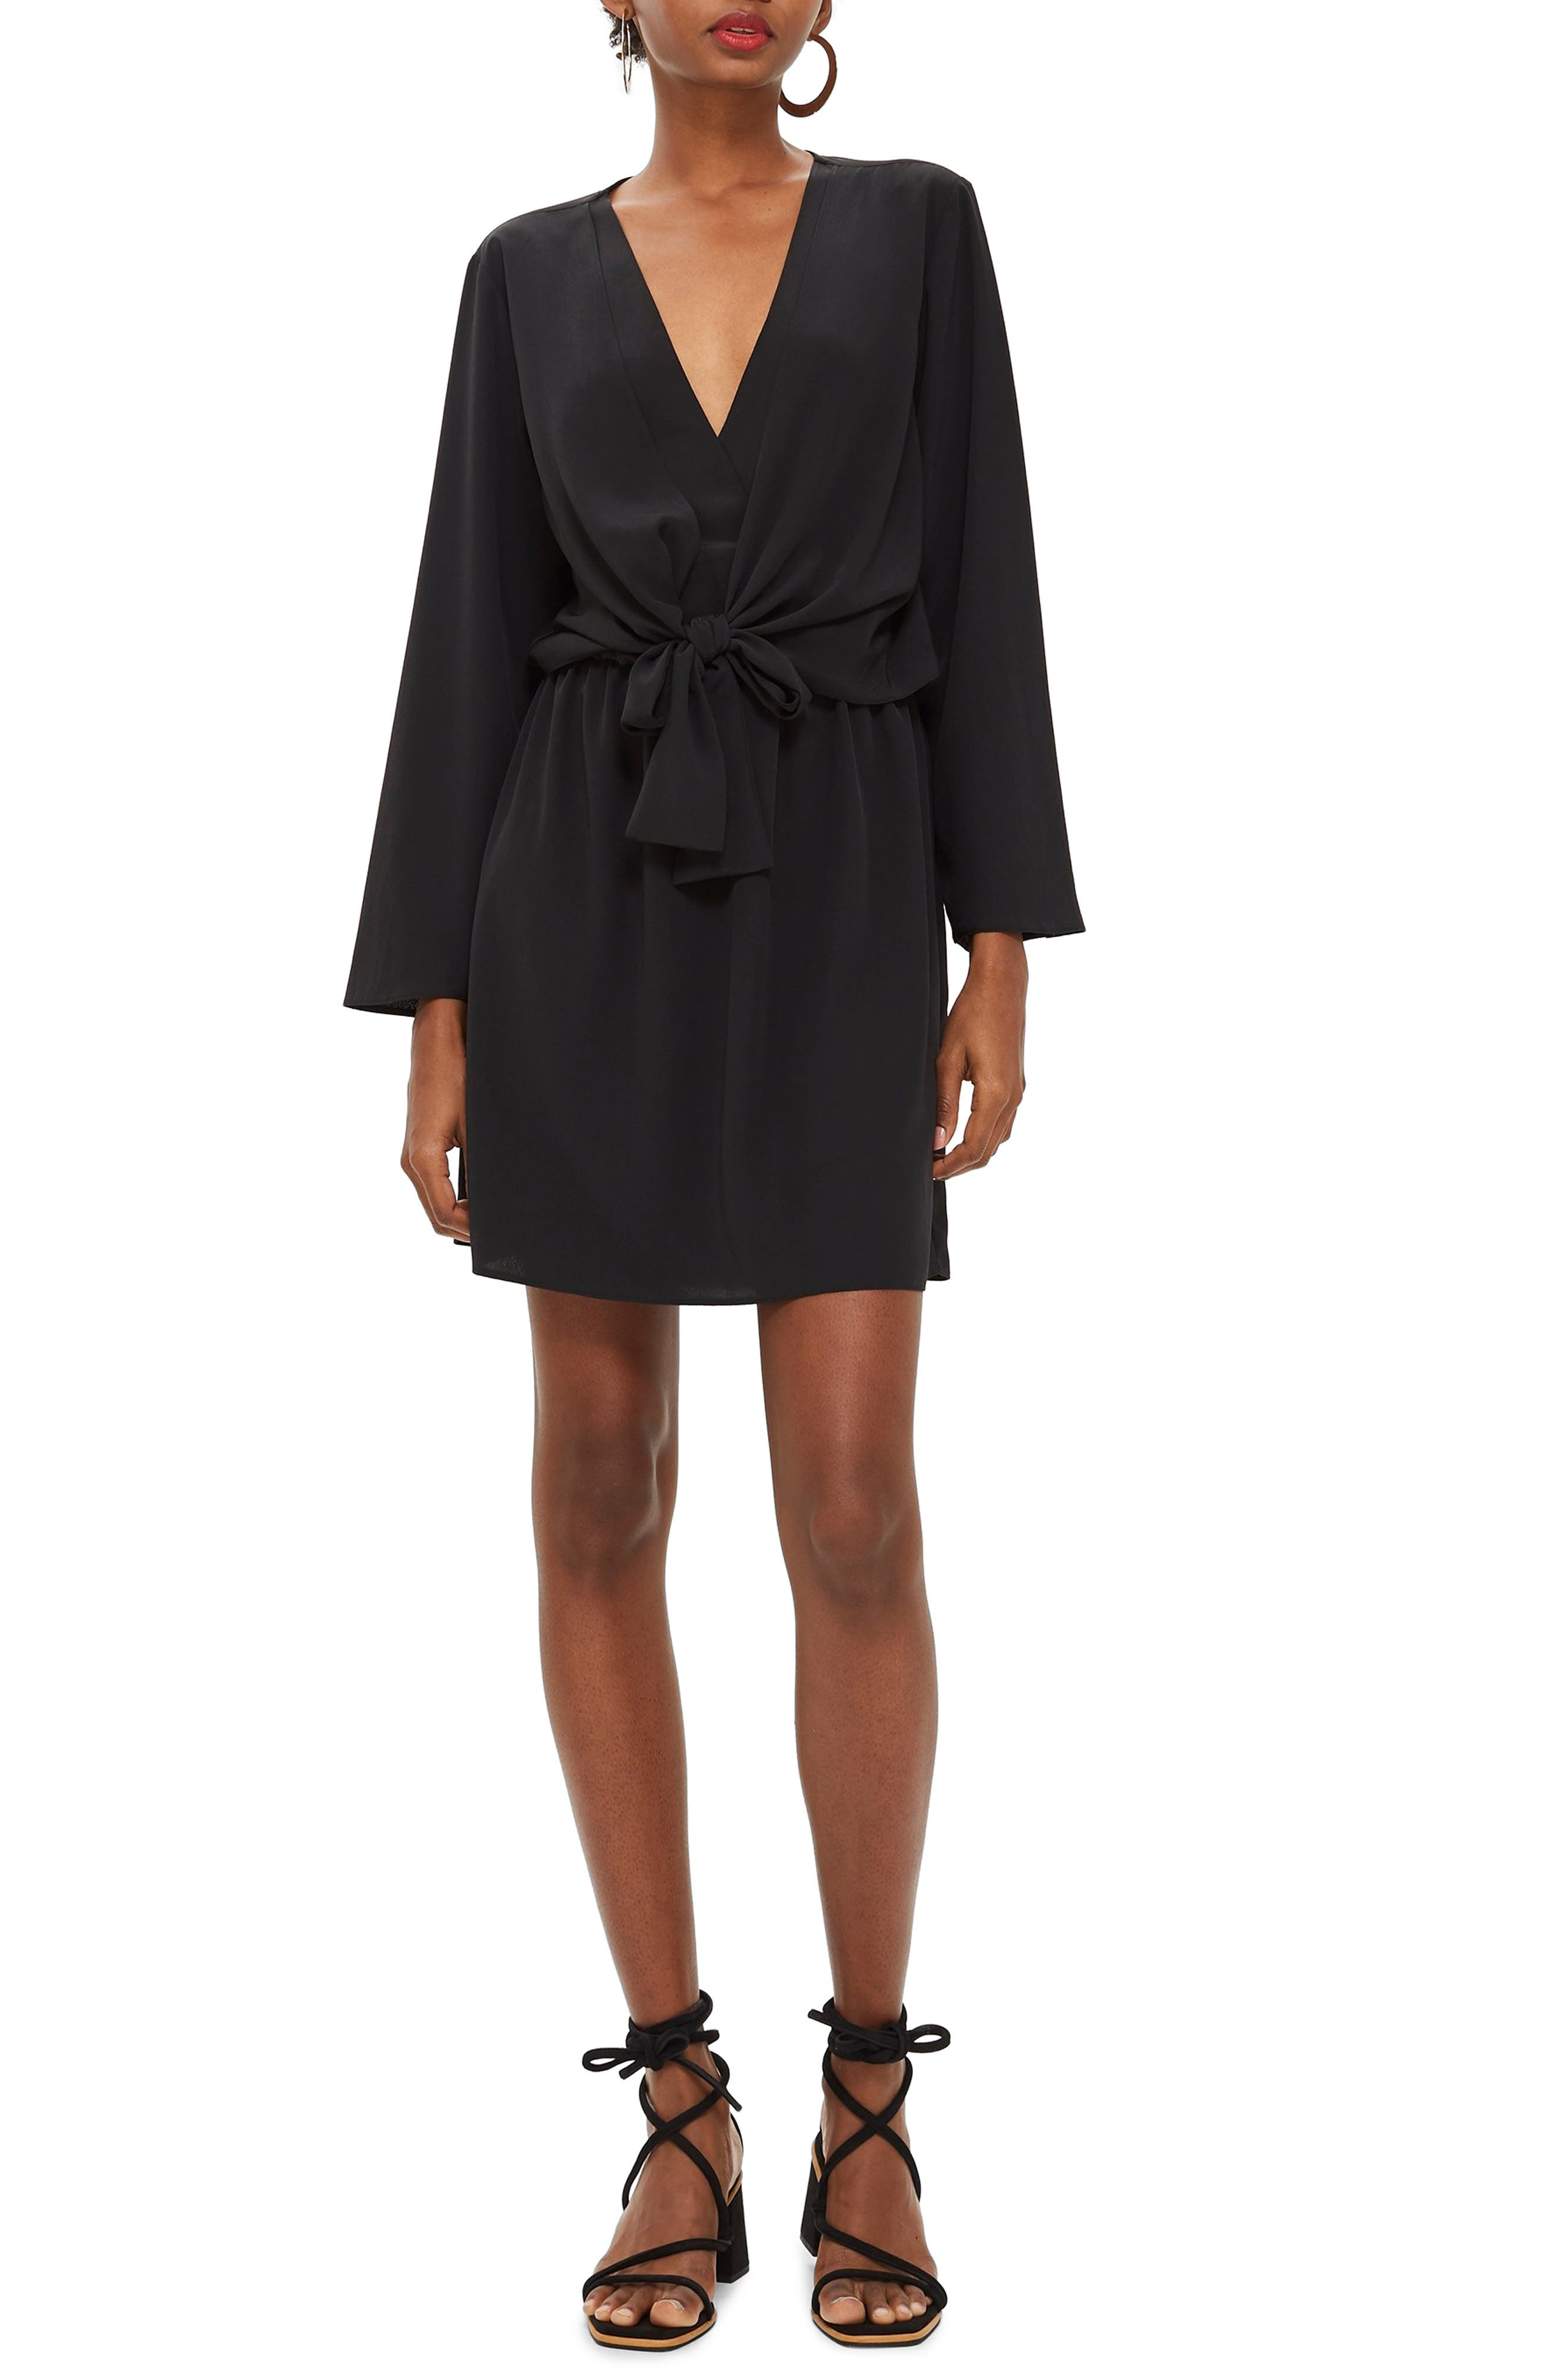 TOPSHOP Tiffany Knot Minidress, Main, color, BLACK